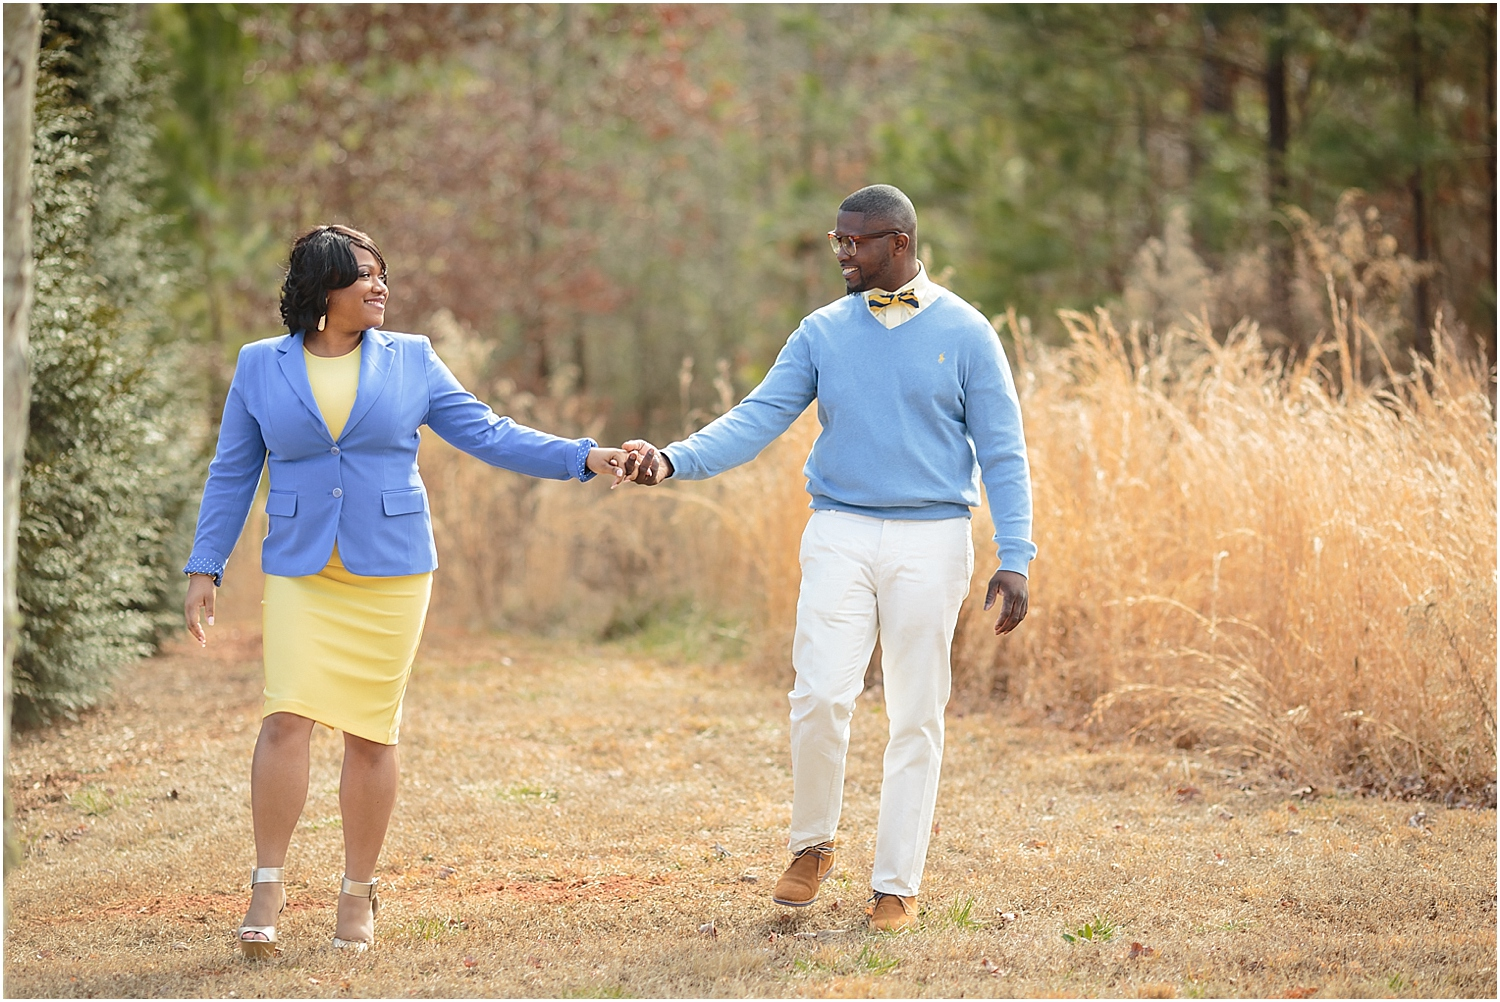 20150131-engagement-outdoor-winter-greenville-9_blog.jpg